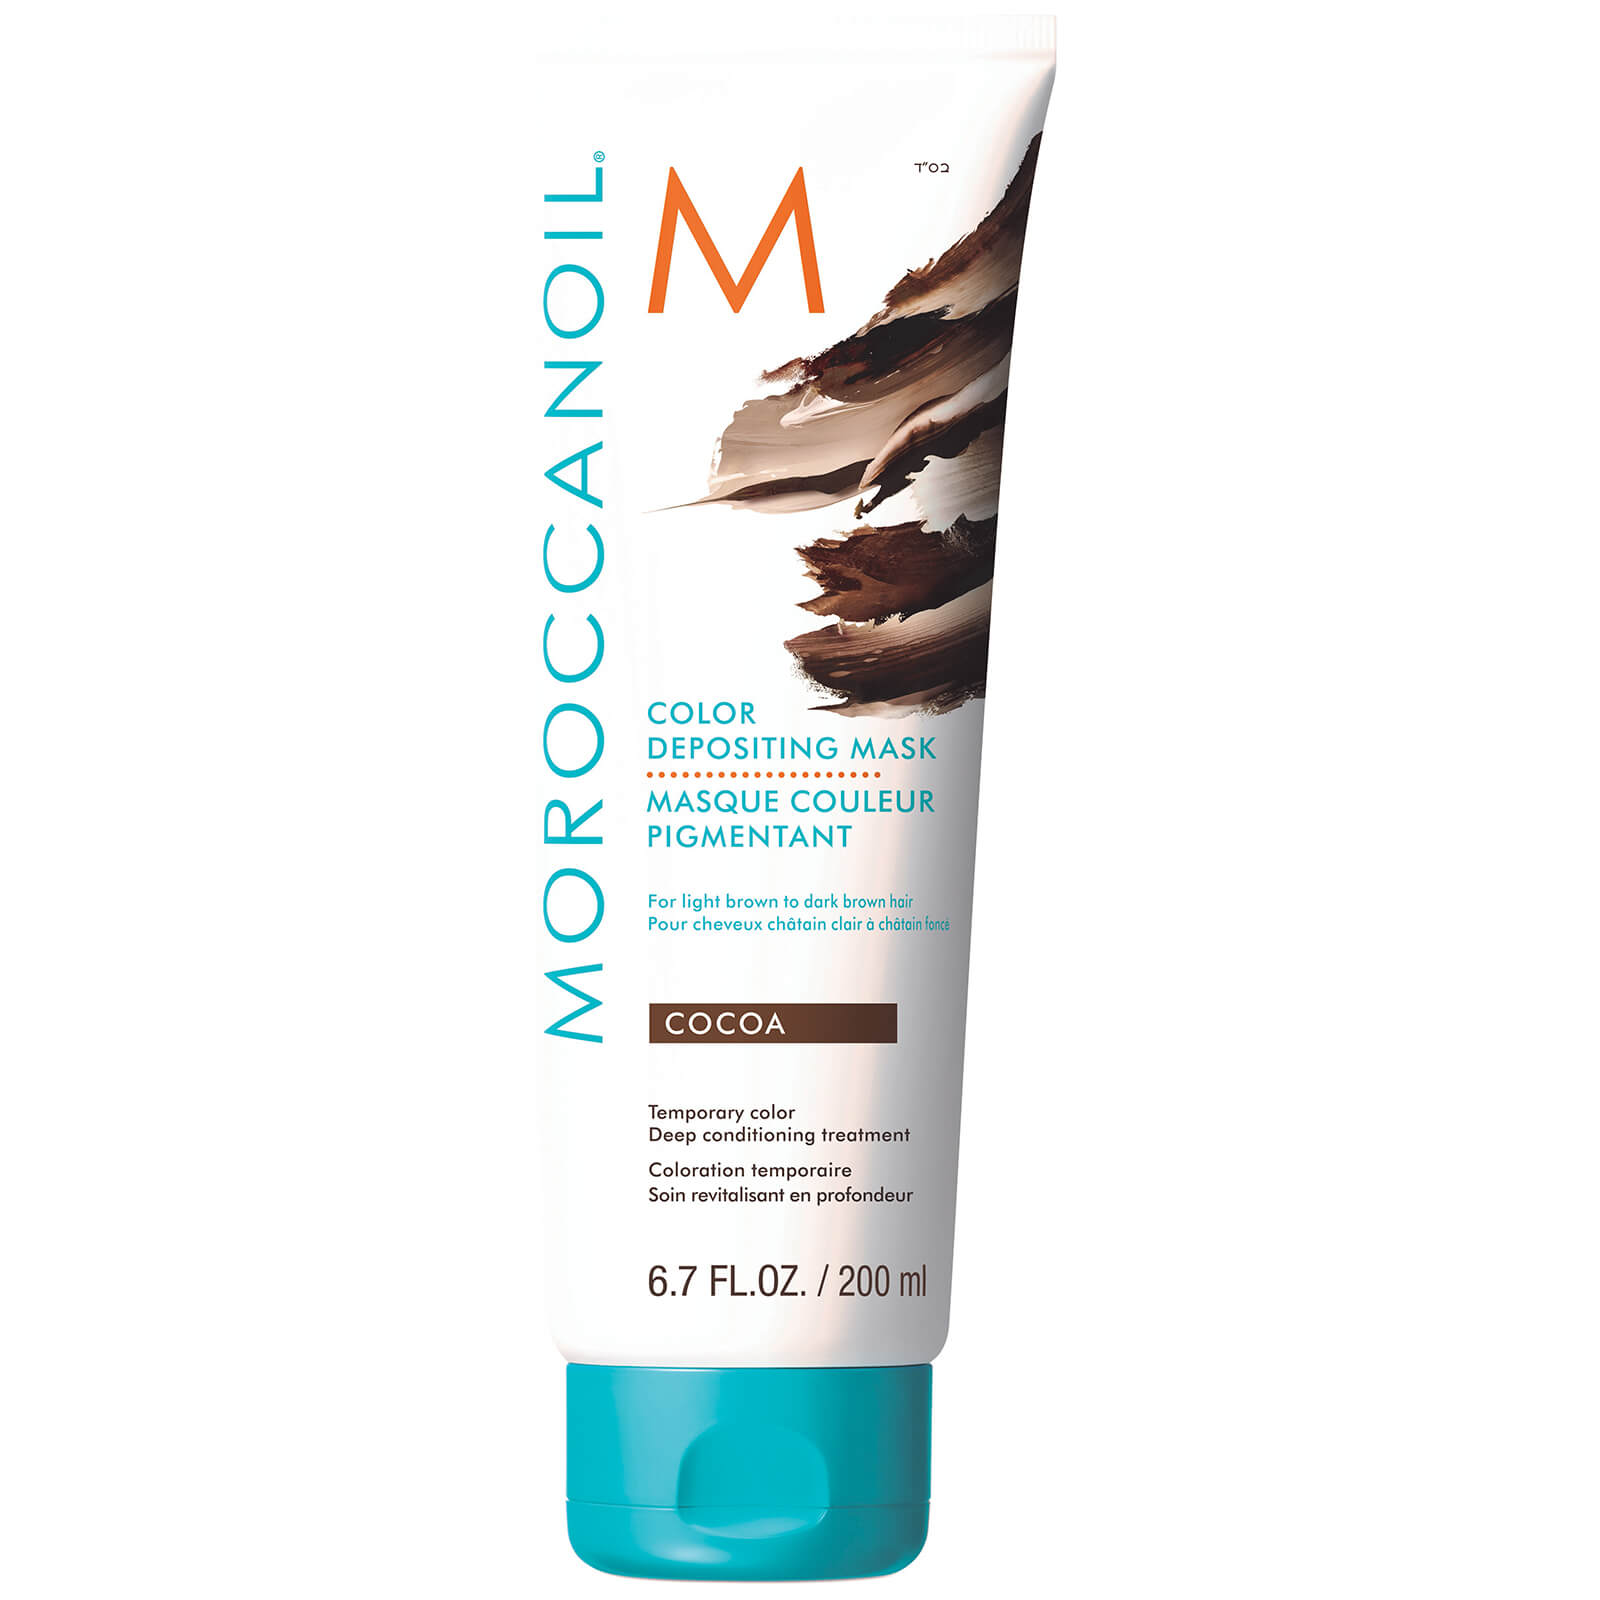 Moroccanoil Color Depositing Mask 200ml (Various Shades) - Cocoa